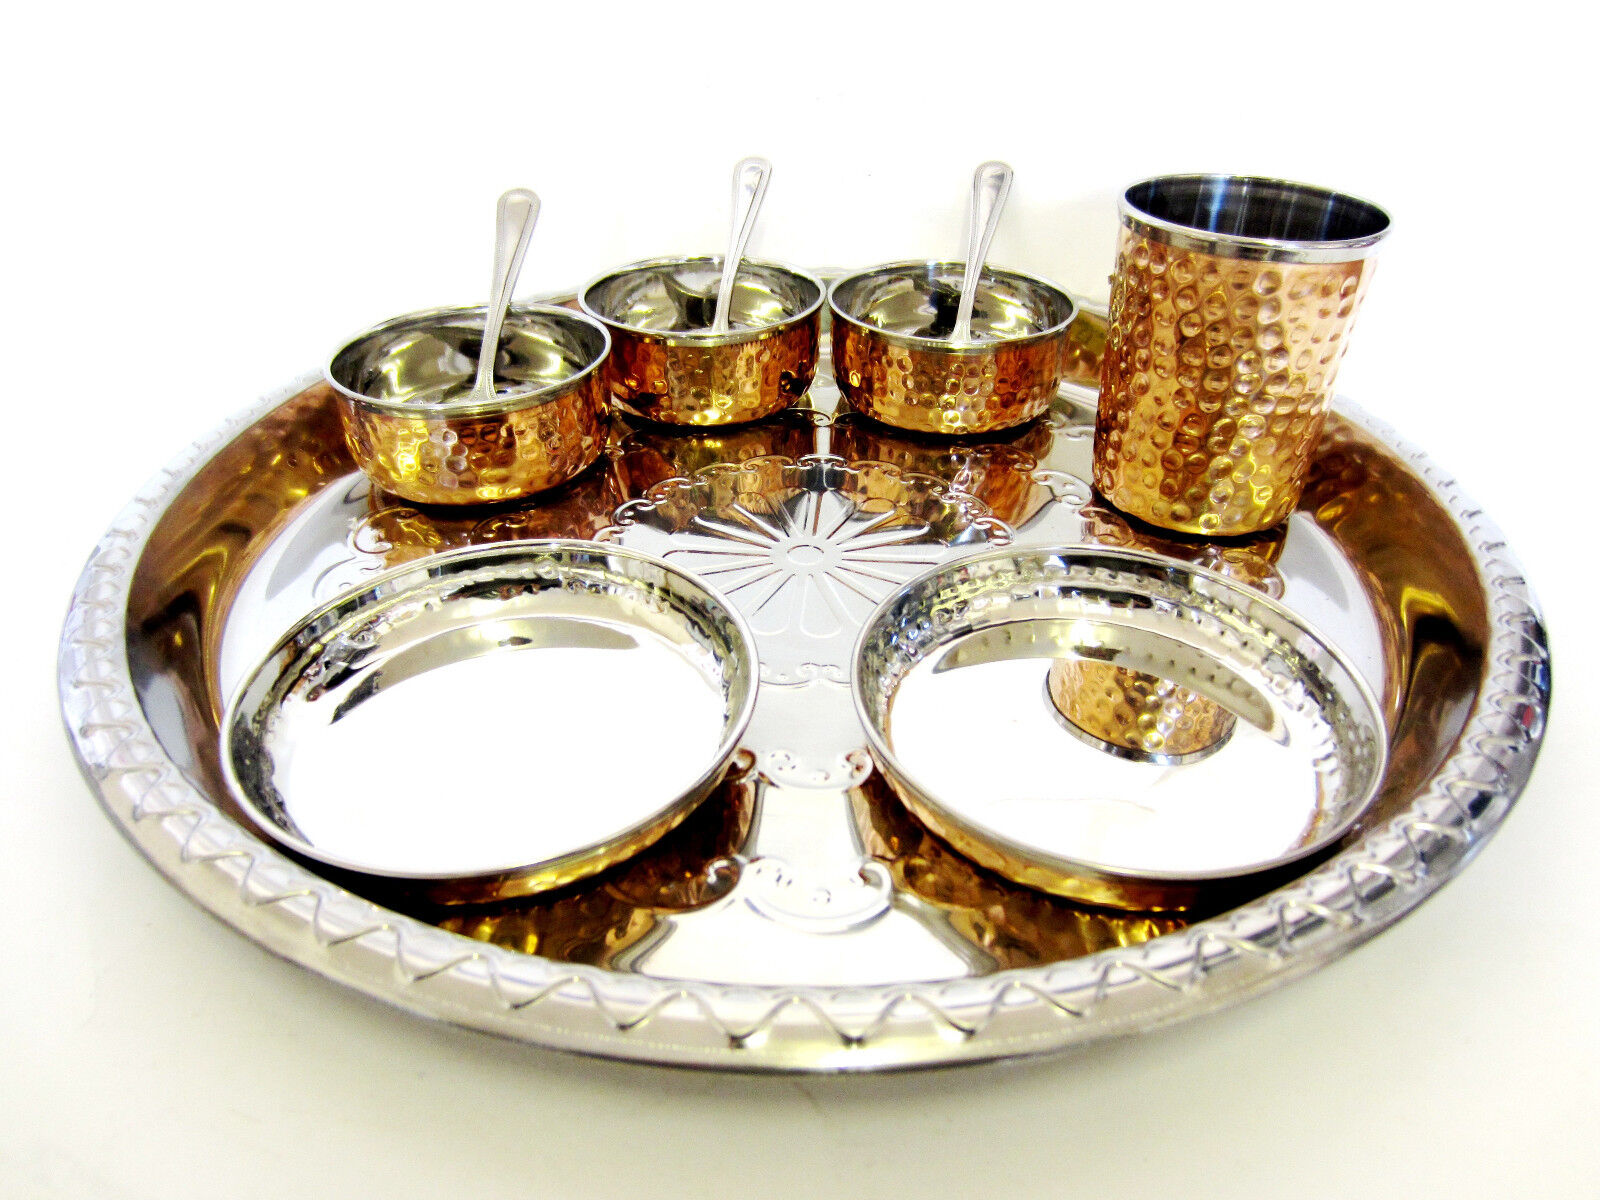 10 PC Indiano & Rame Acciaio Inox Set da cena cibo Thali Curry